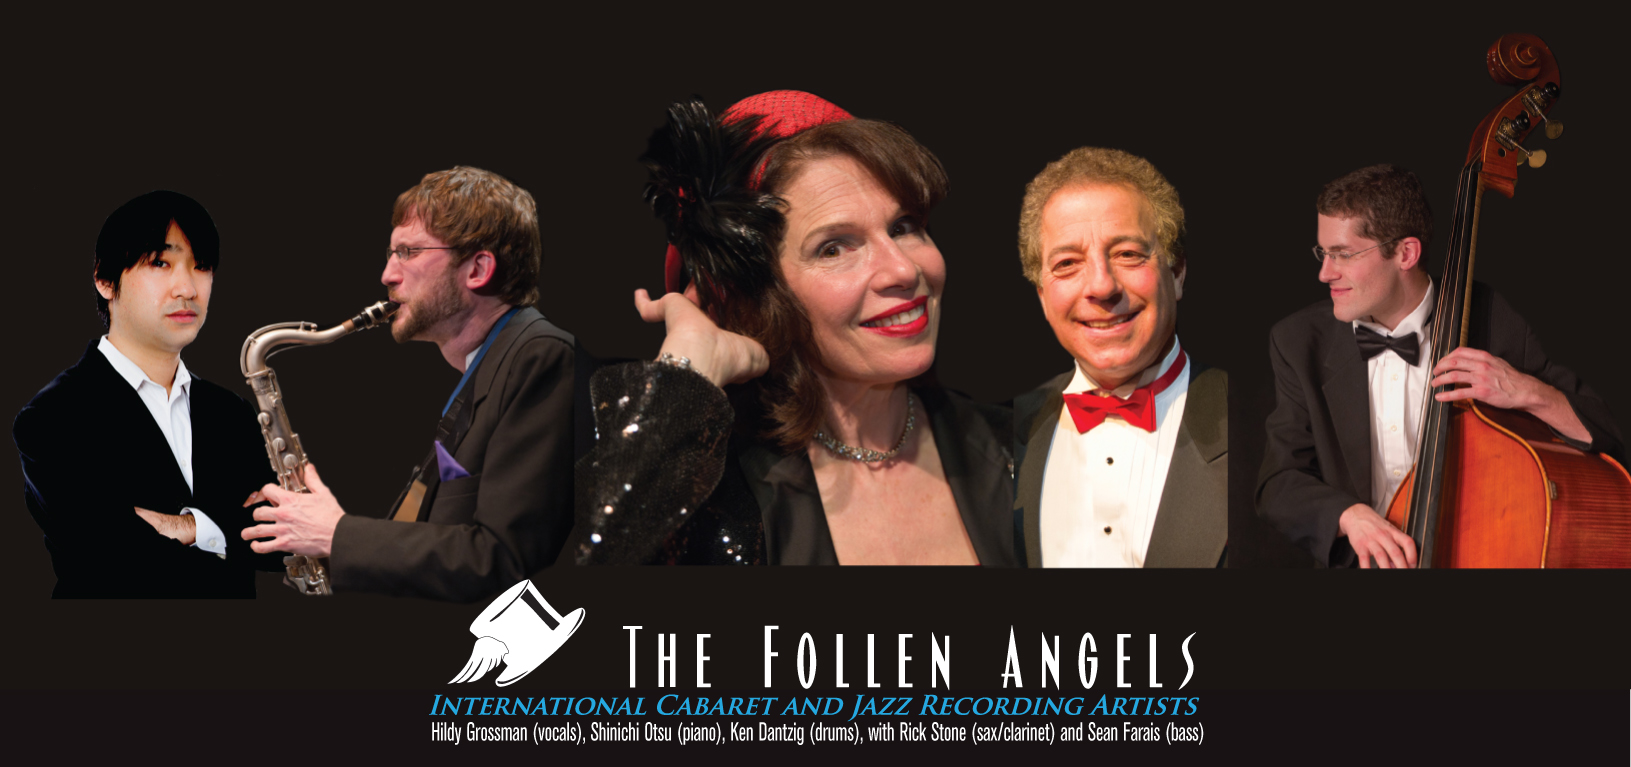 THE FOLLEN ANGELS 12-7-13 M-L-T GERSHWIN COLE PORTER #2